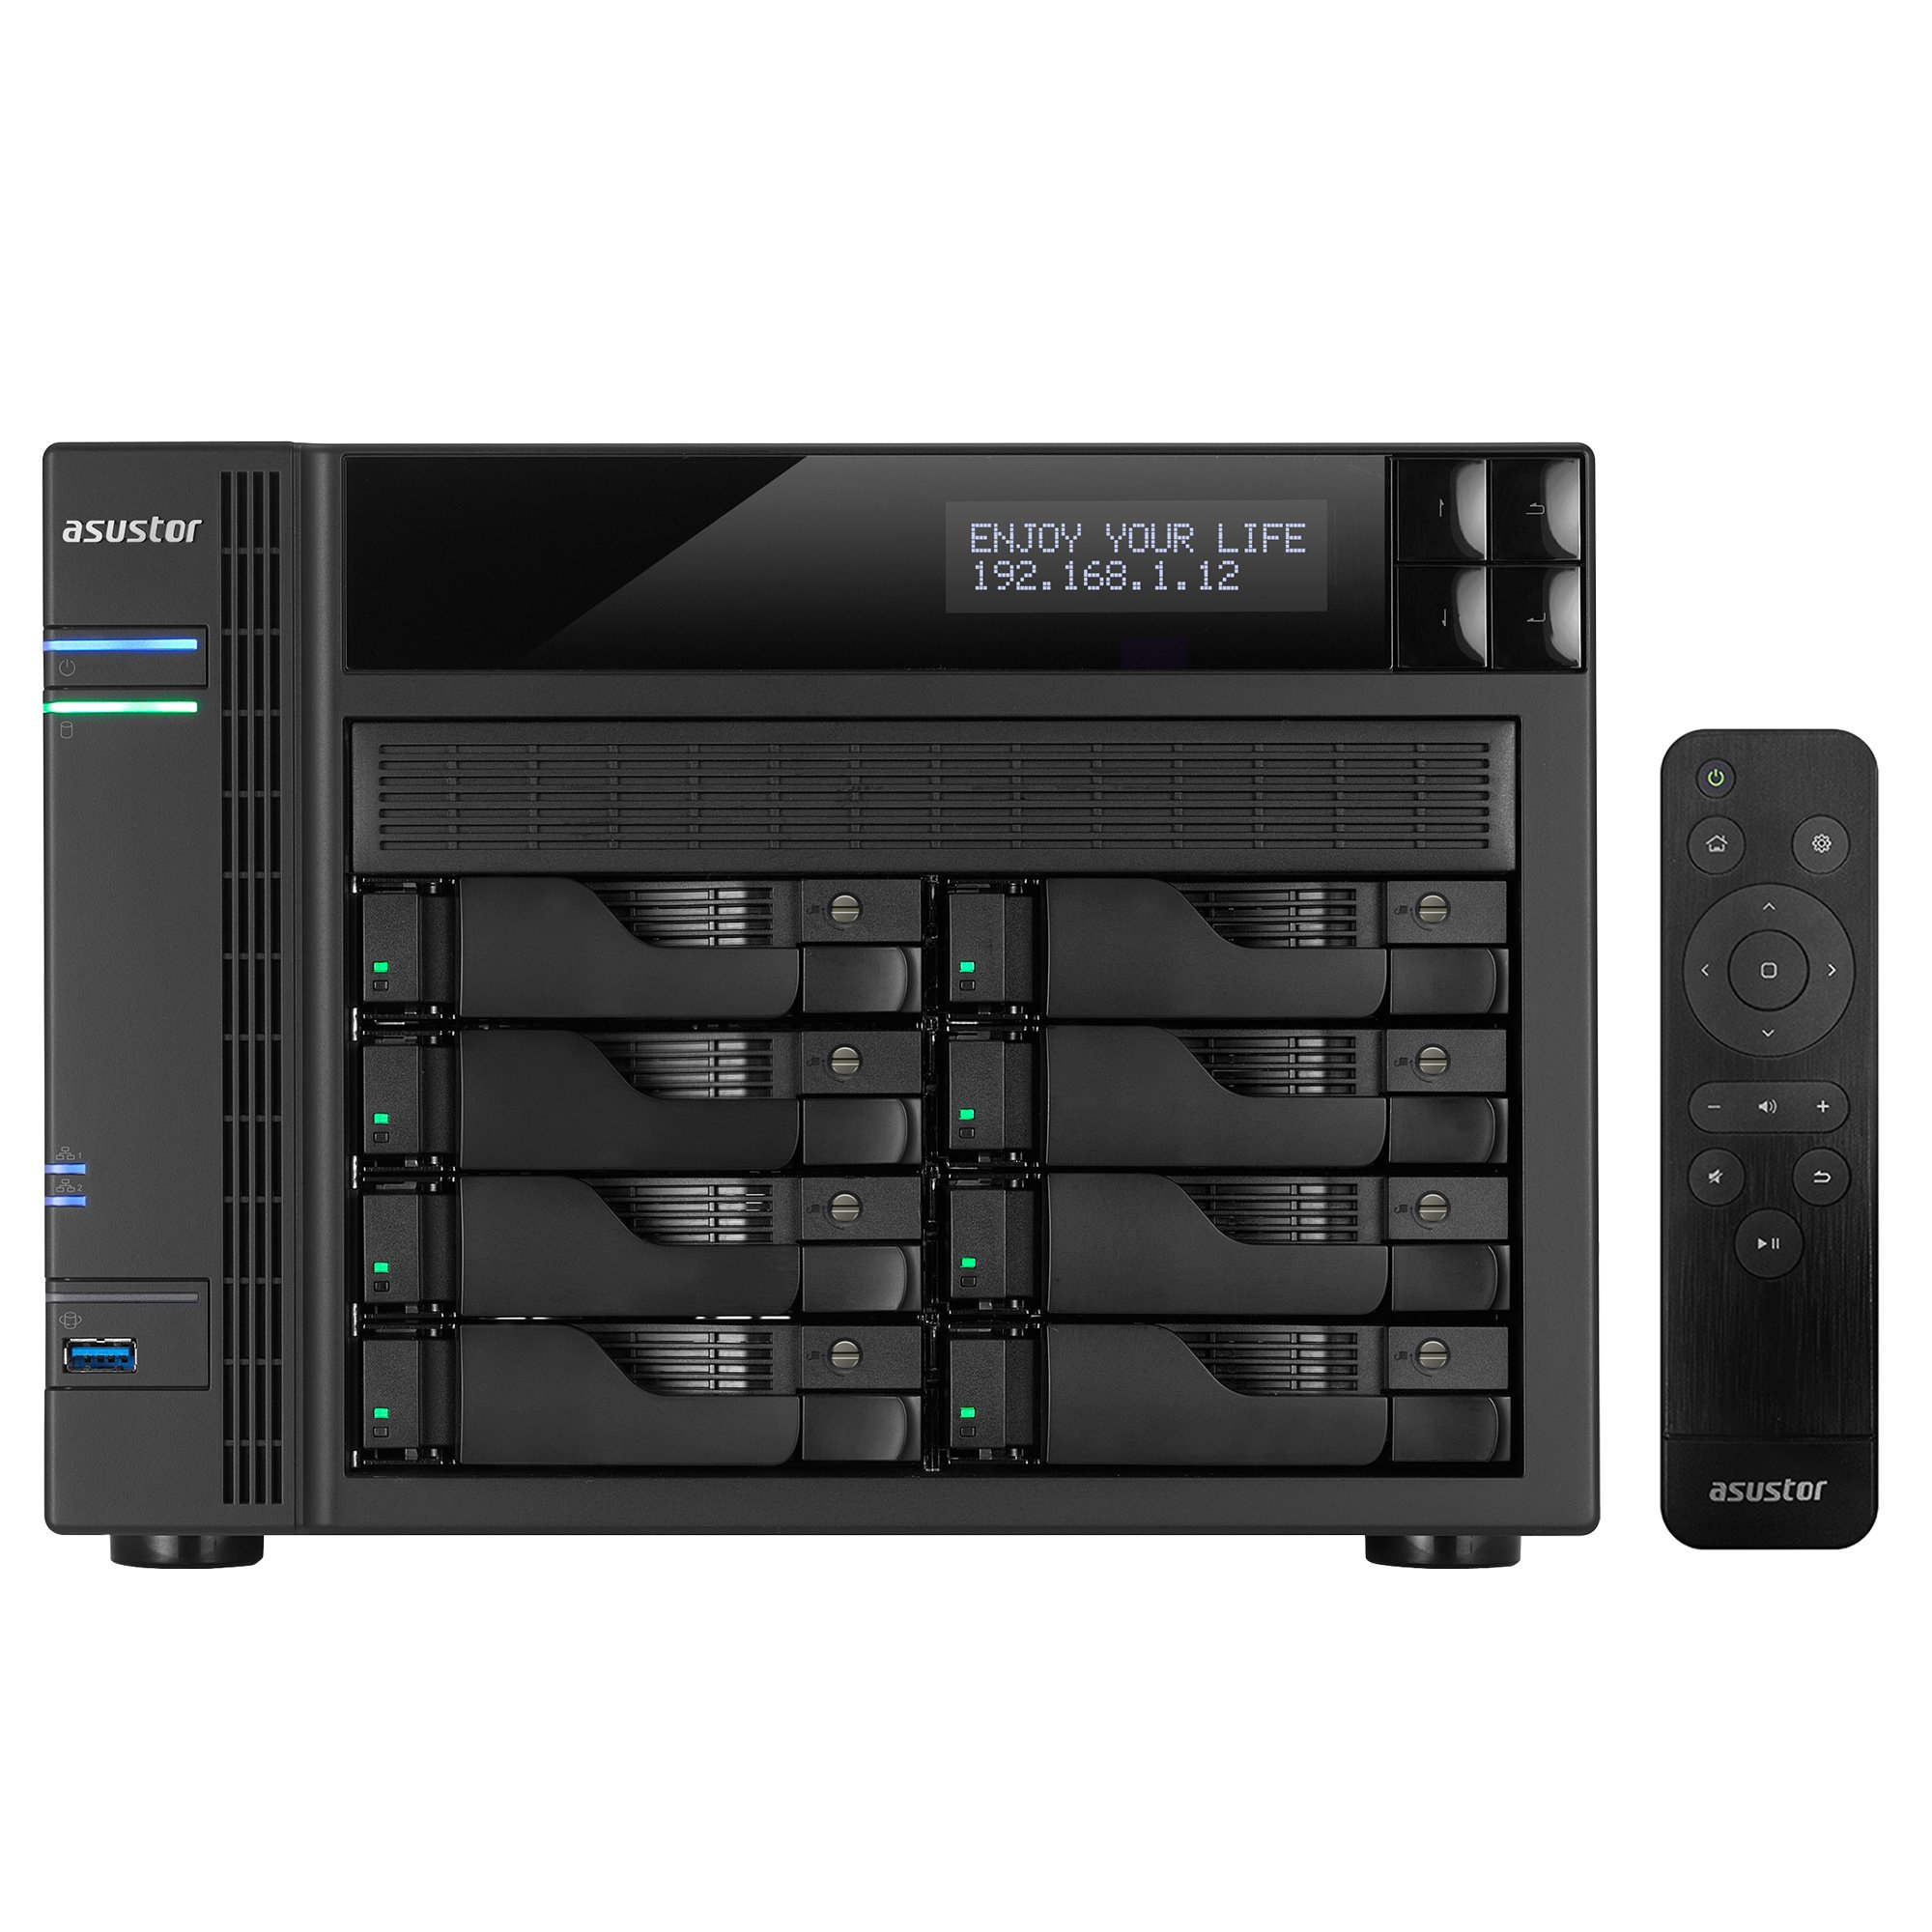 Asustor AS6208T, 8-Bay NAS (Diskless), Intel 1.6GHz Quad-Core, 4GB RAM, Includes AS-RC13 Multimedia Remote